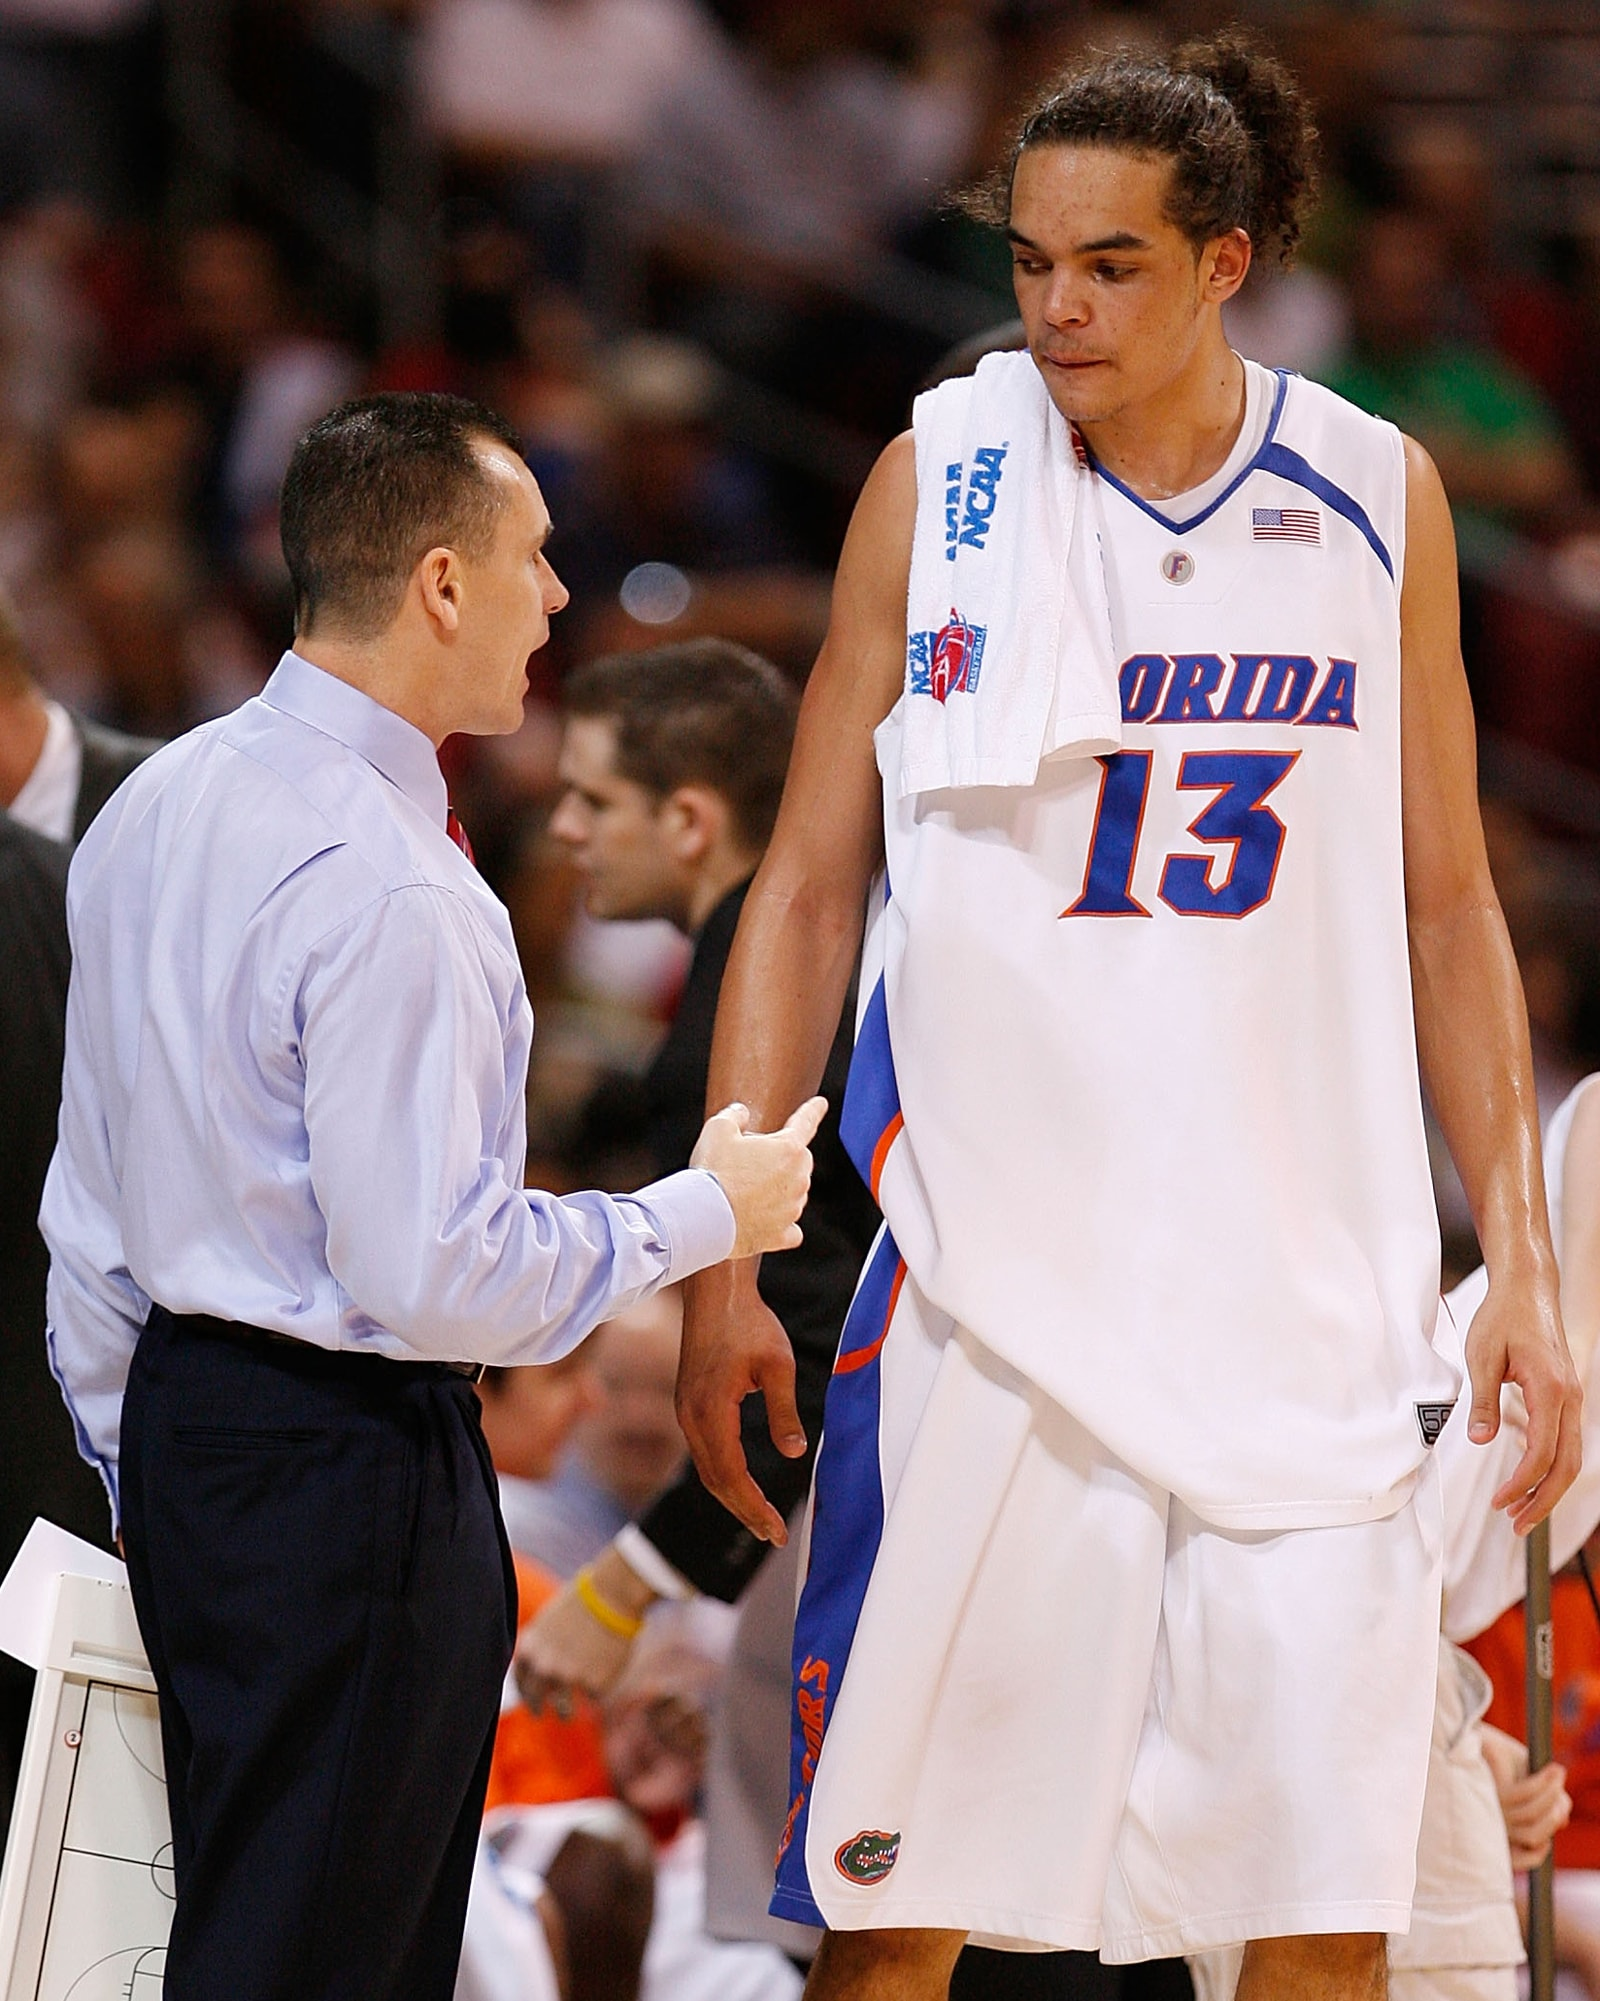 Billy Donovan coaching former Bull Joakim Noah at the University of Florida